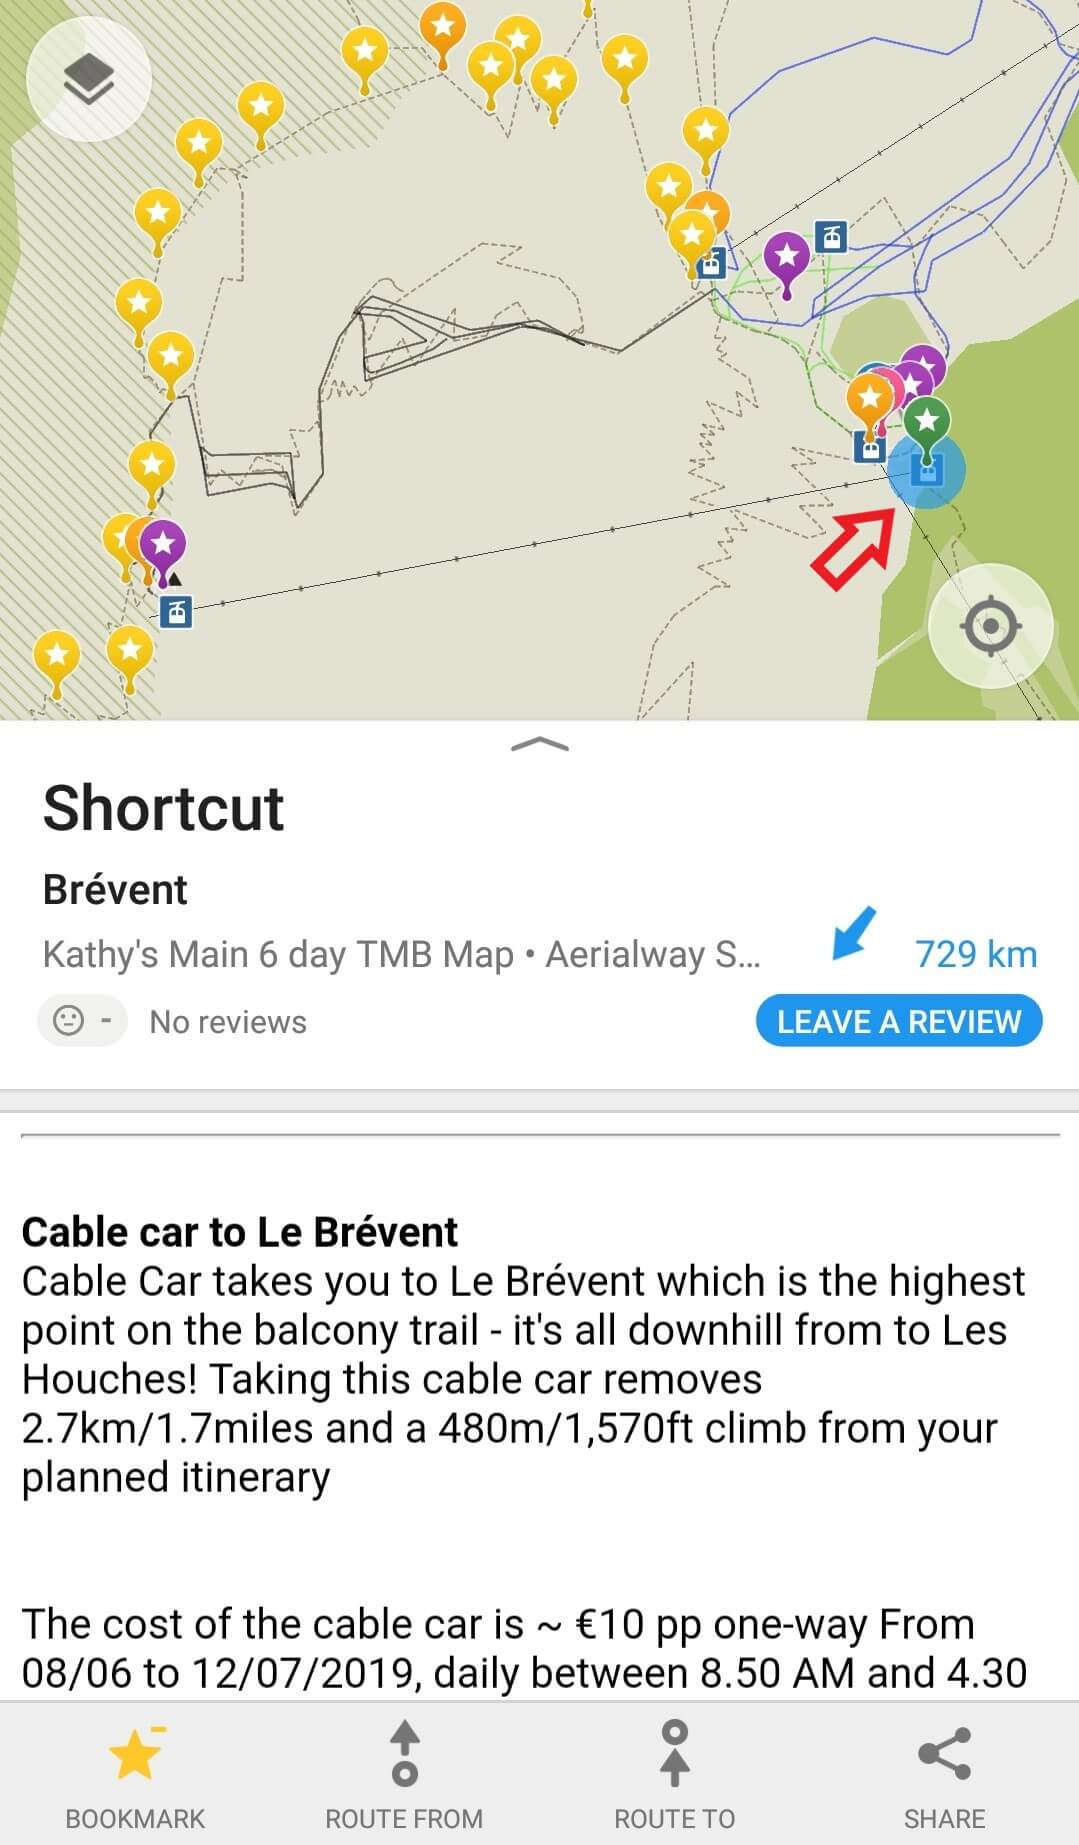 Image 13:  Example of shortcut located on the map